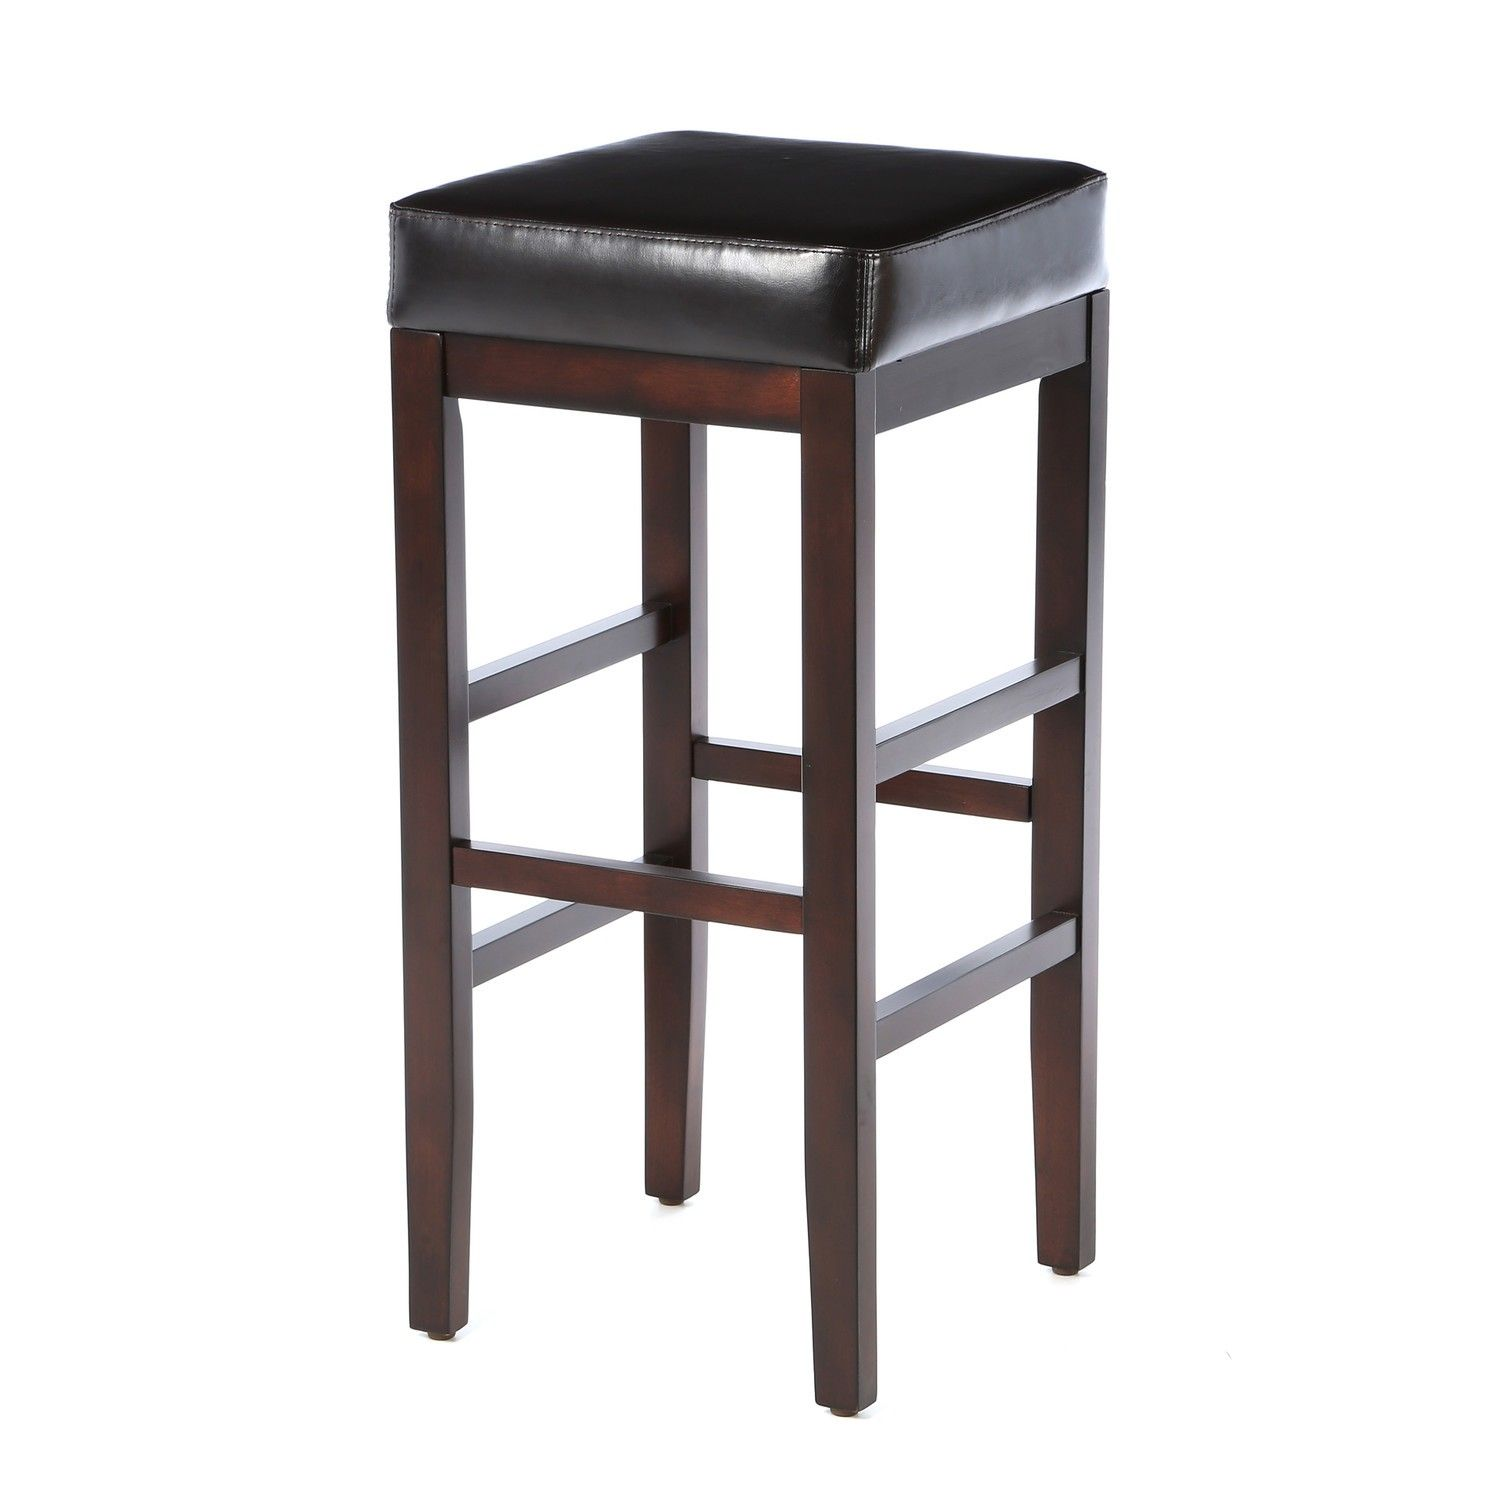 Marvelous Furniture Square Black Leather Padded Seated Bar Stool Machost Co Dining Chair Design Ideas Machostcouk